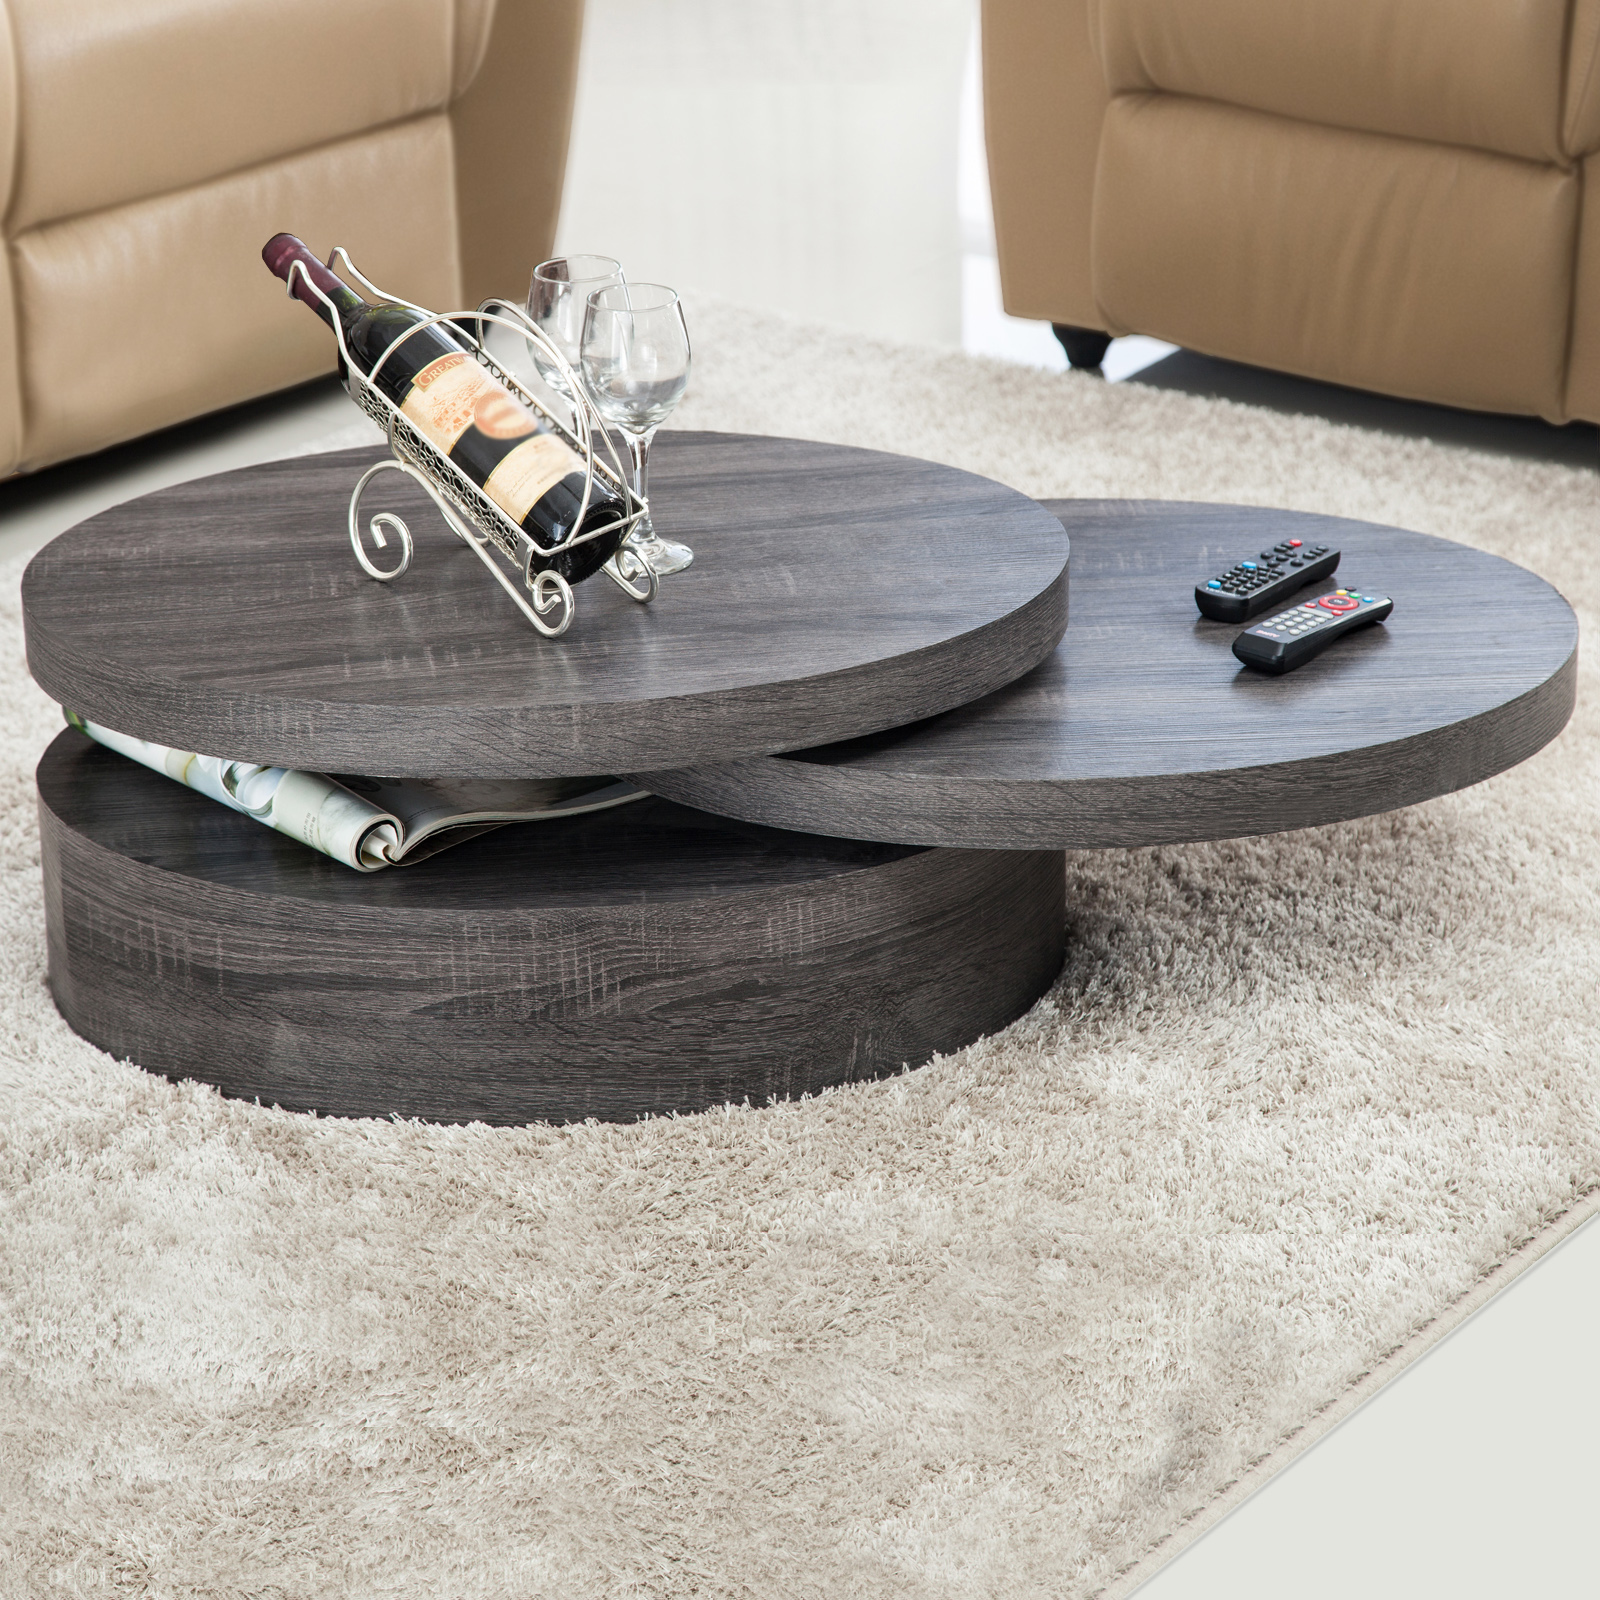 Oval Rotating Coffee Table: Modern Contemporary Black Oak Round Rotating Wood Coffee